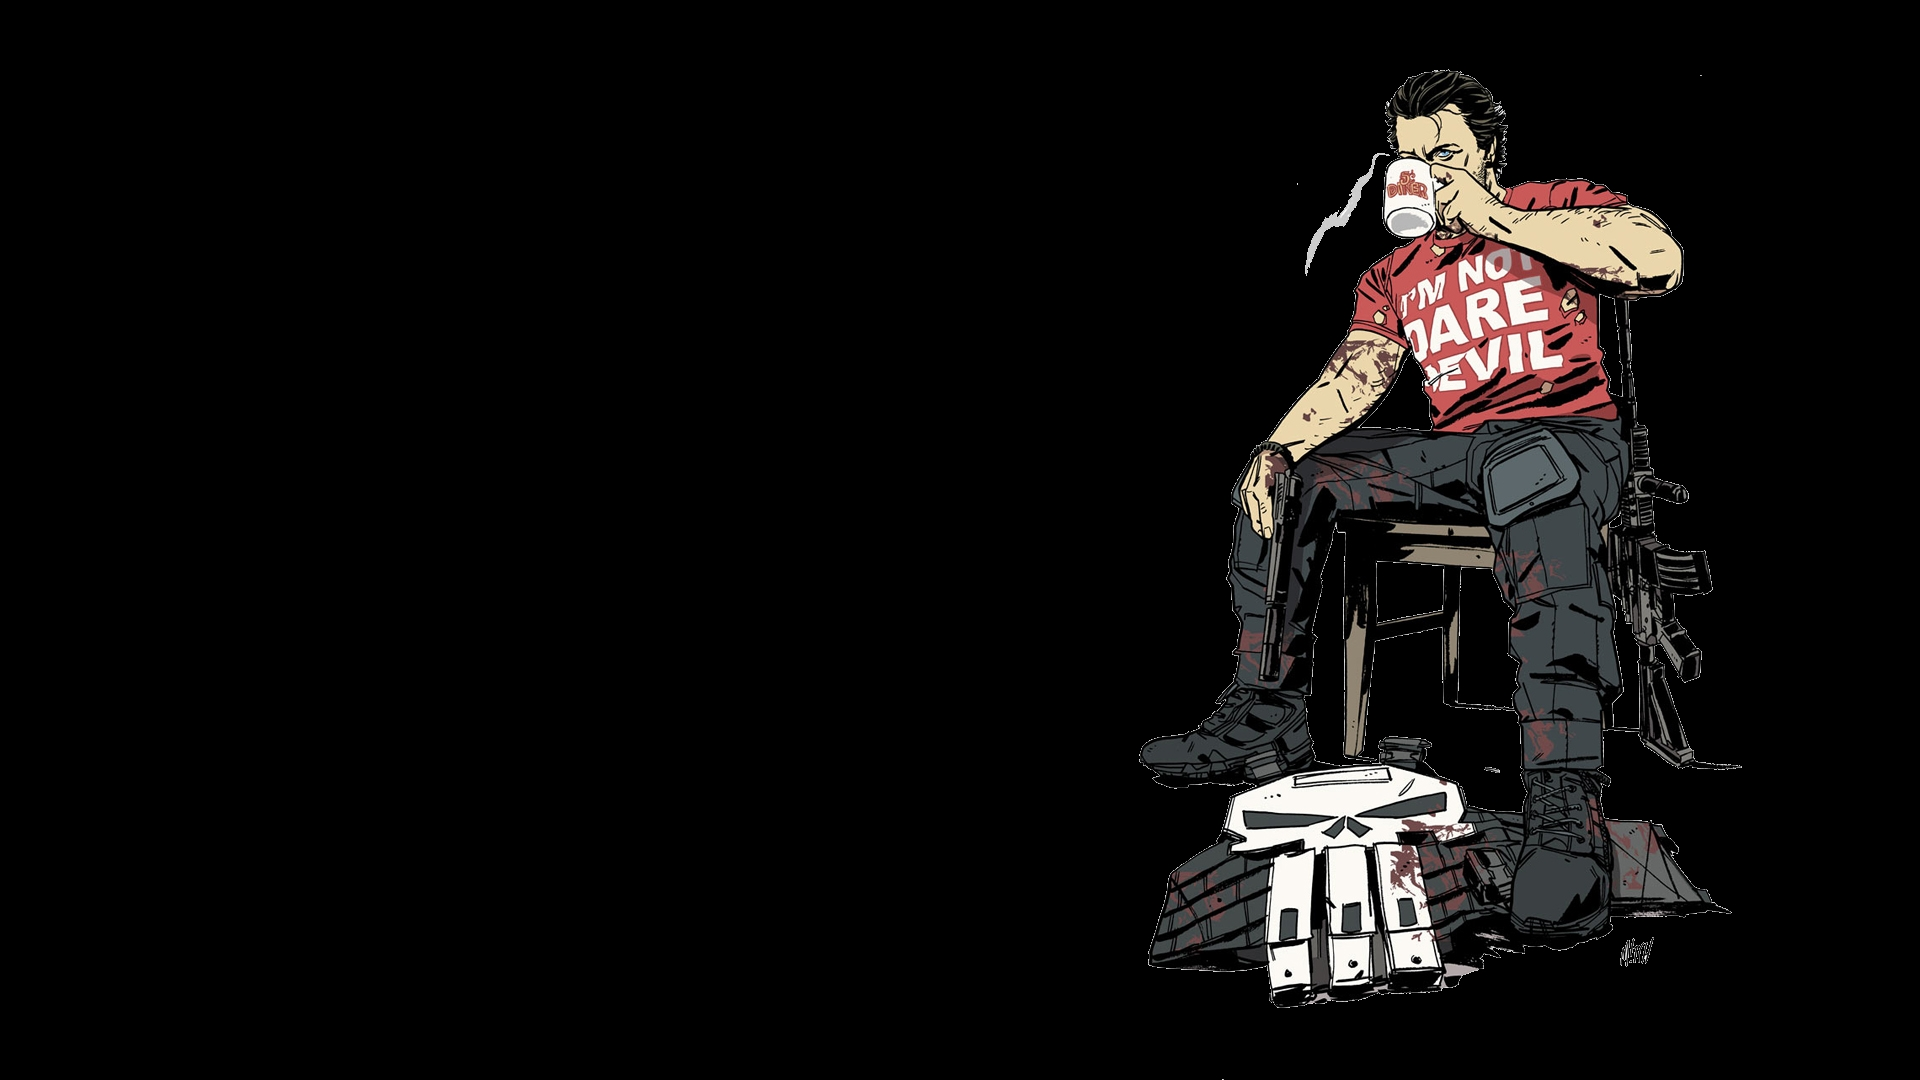 The Punisher Computer Wallpapers Desktop Backgrounds 1920x1080 ID 1920x1080